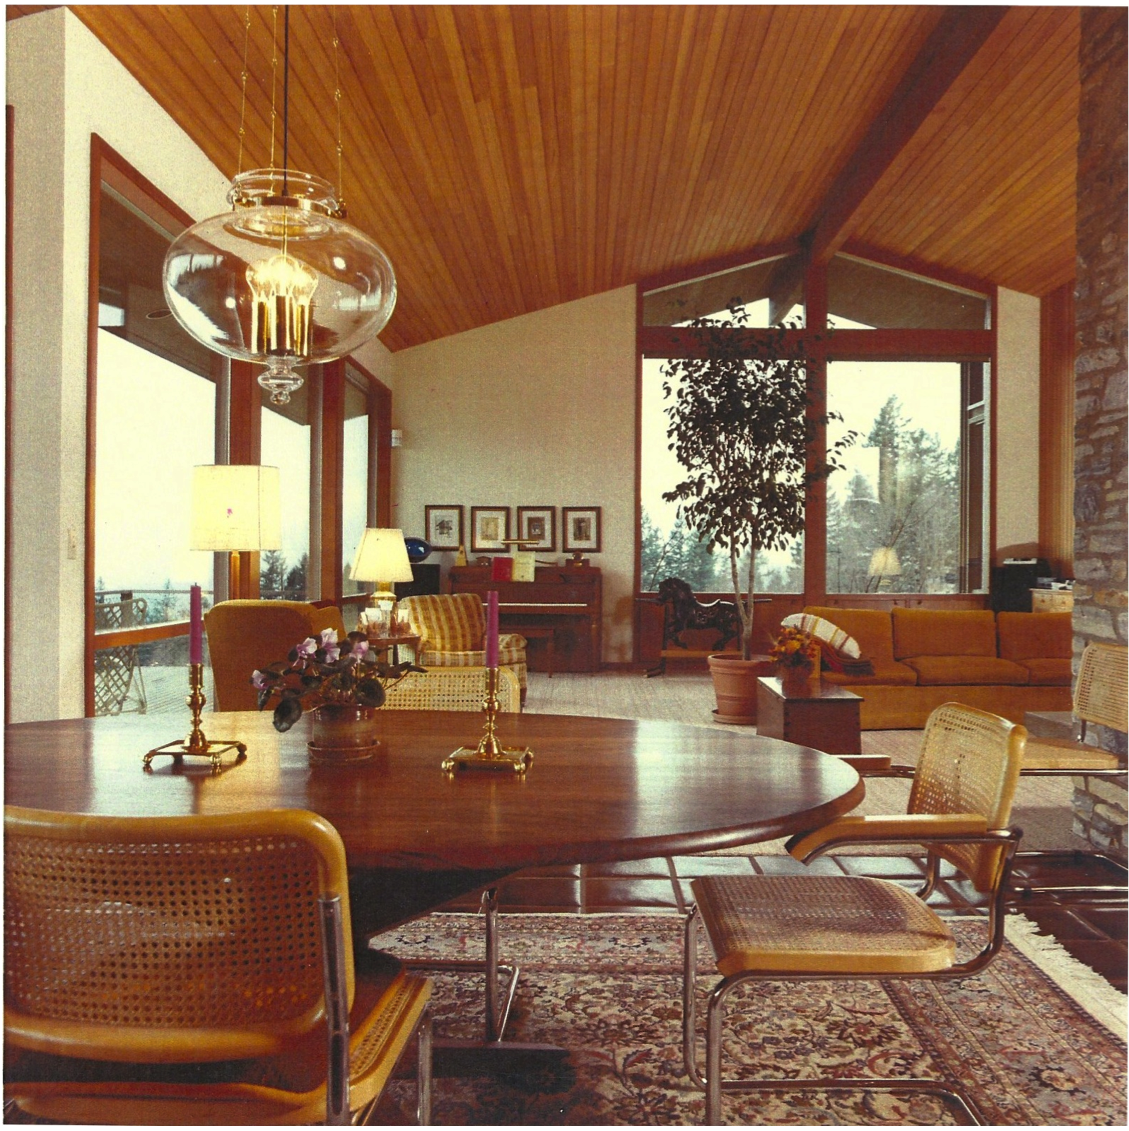 Interior Of The Papworth House C. 1980. The Home Was